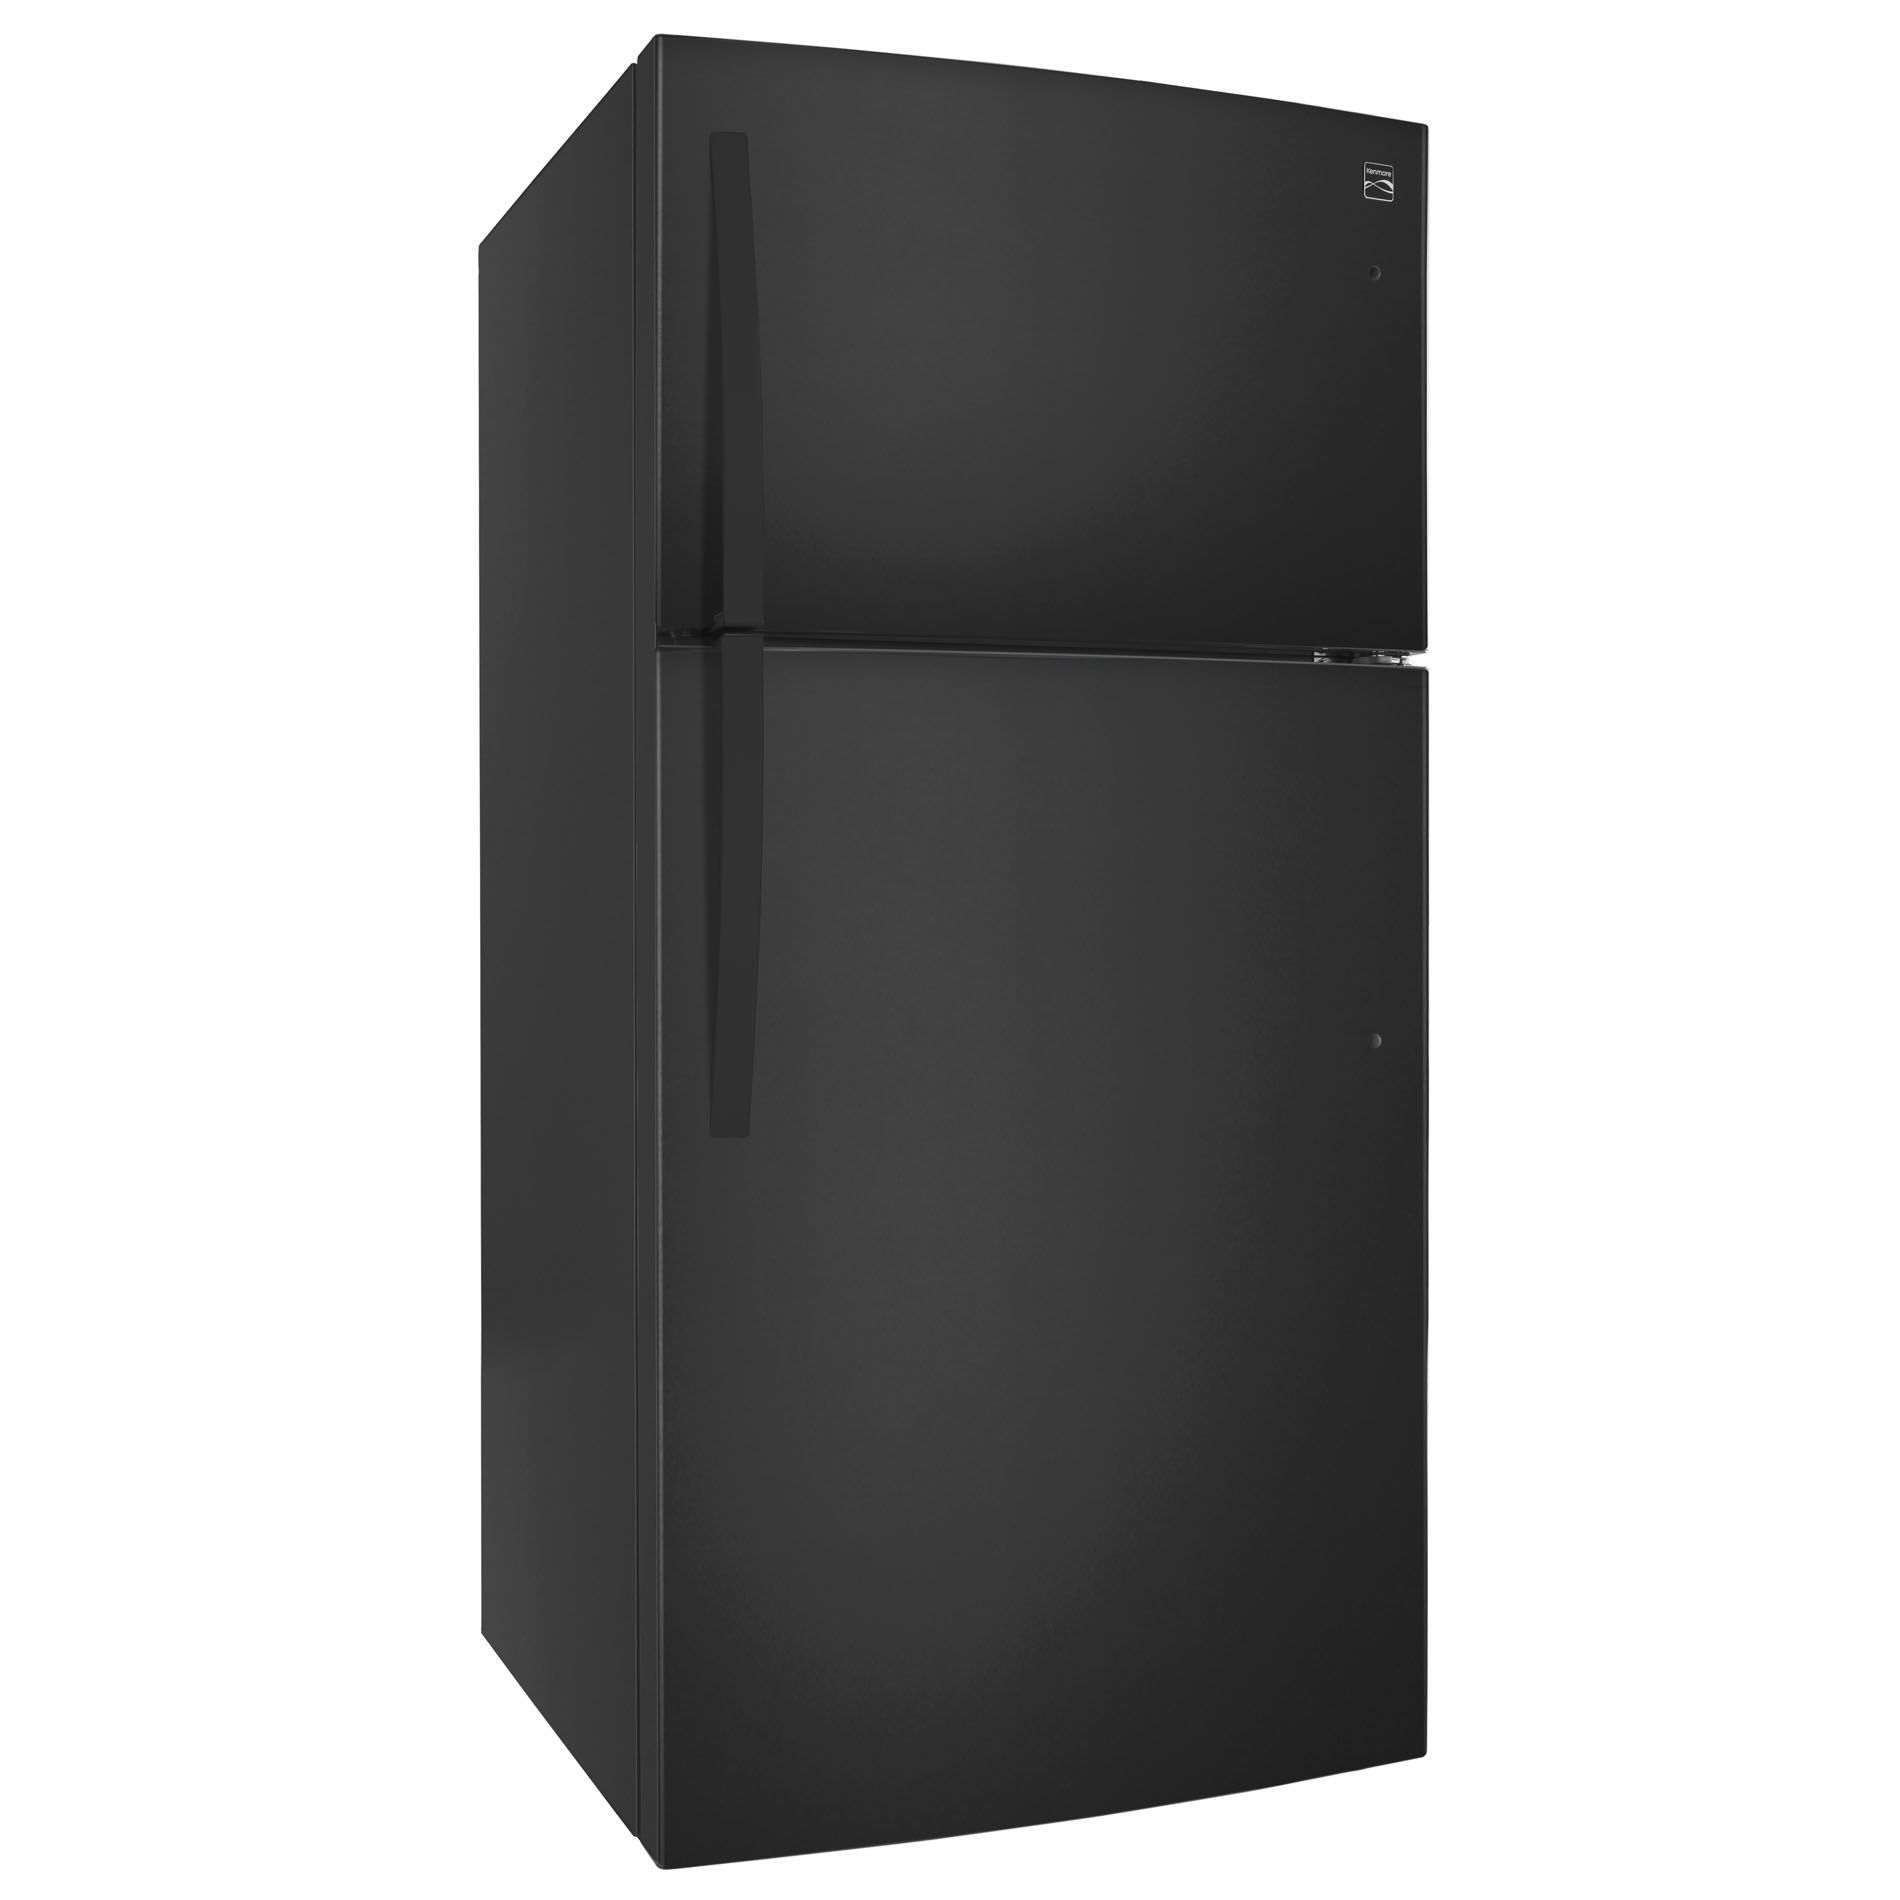 Kenmore 20 cu. ft. Black Top-Freezer Refrigerator with Icemaker